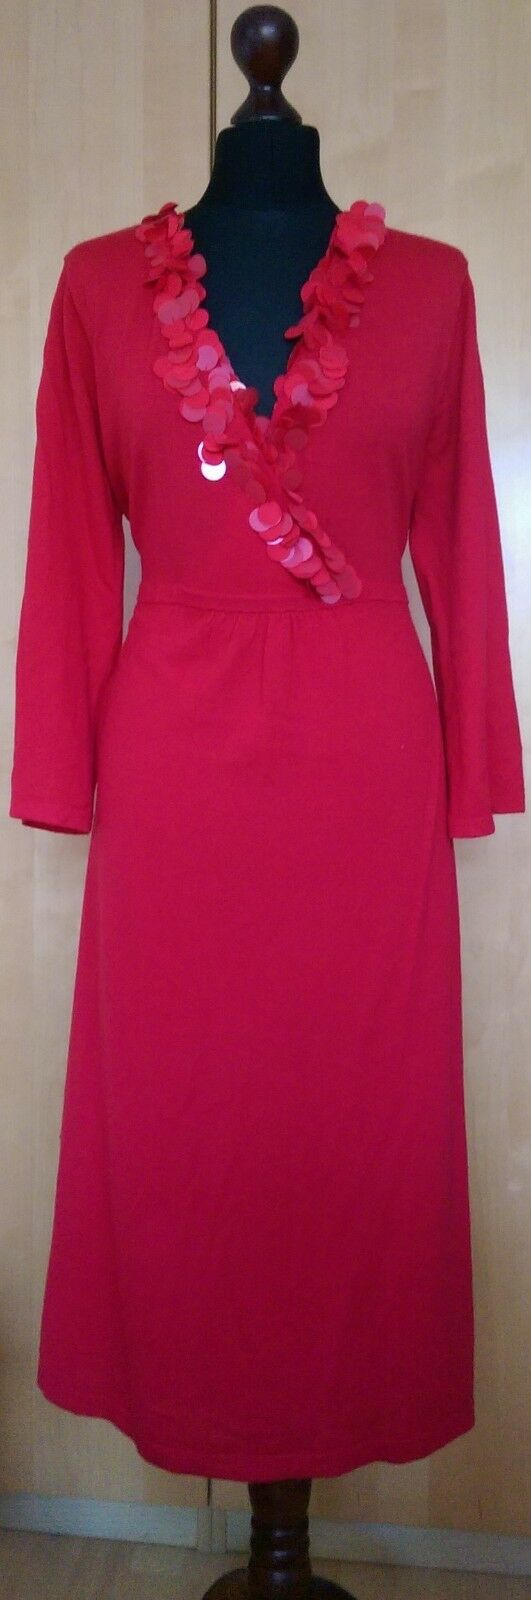 BNWT Boden Red Dress Khitted Embellished  100% Wool Size 18L UK